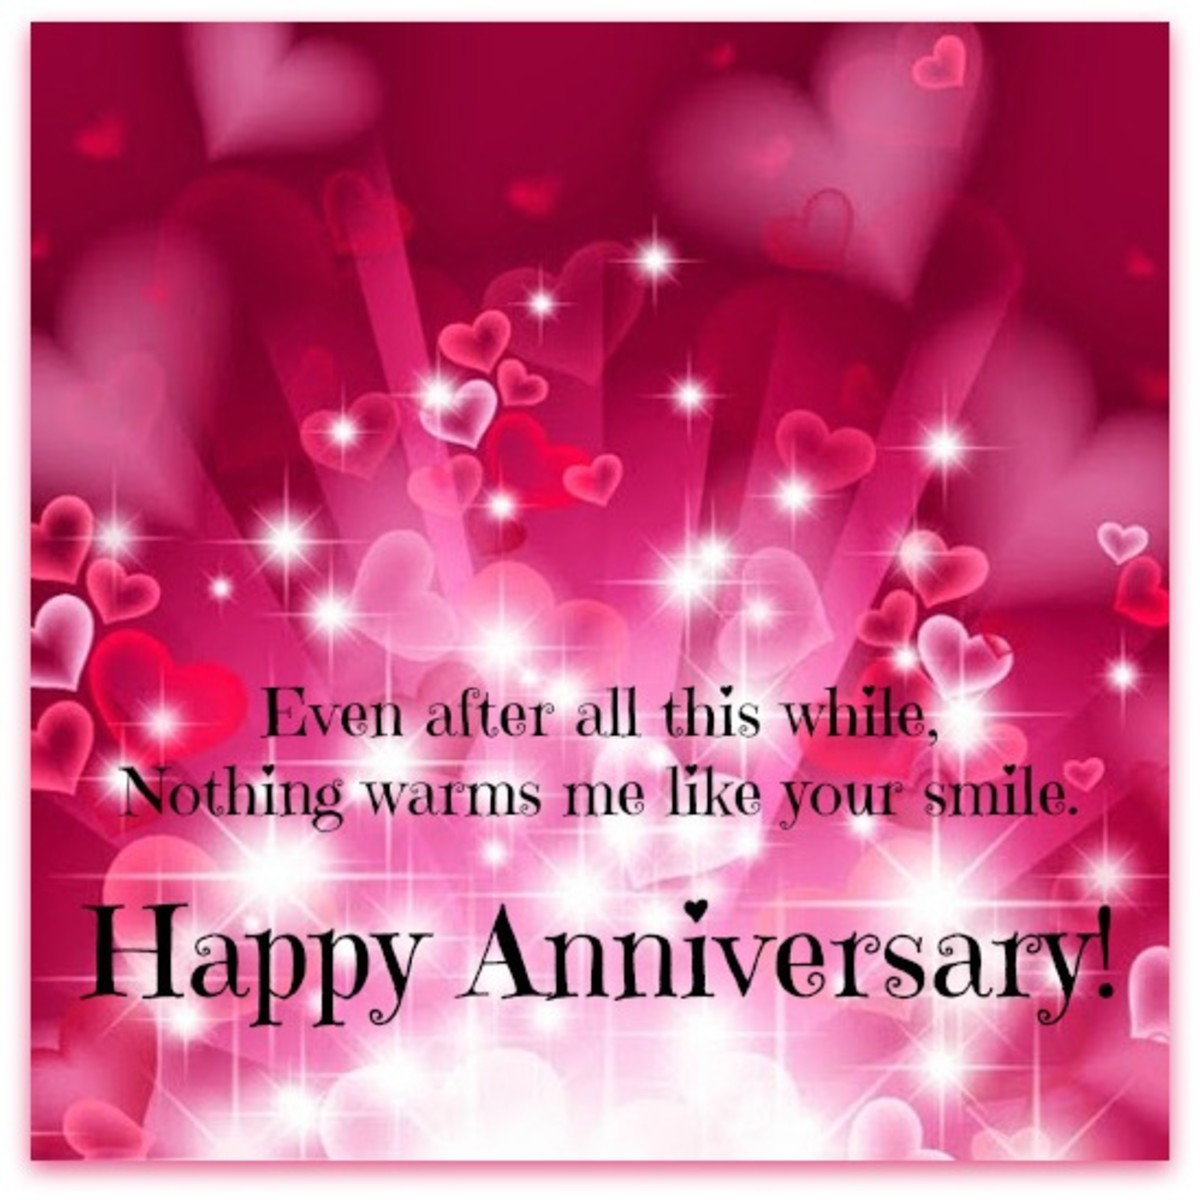 Marriage anniversary greeting